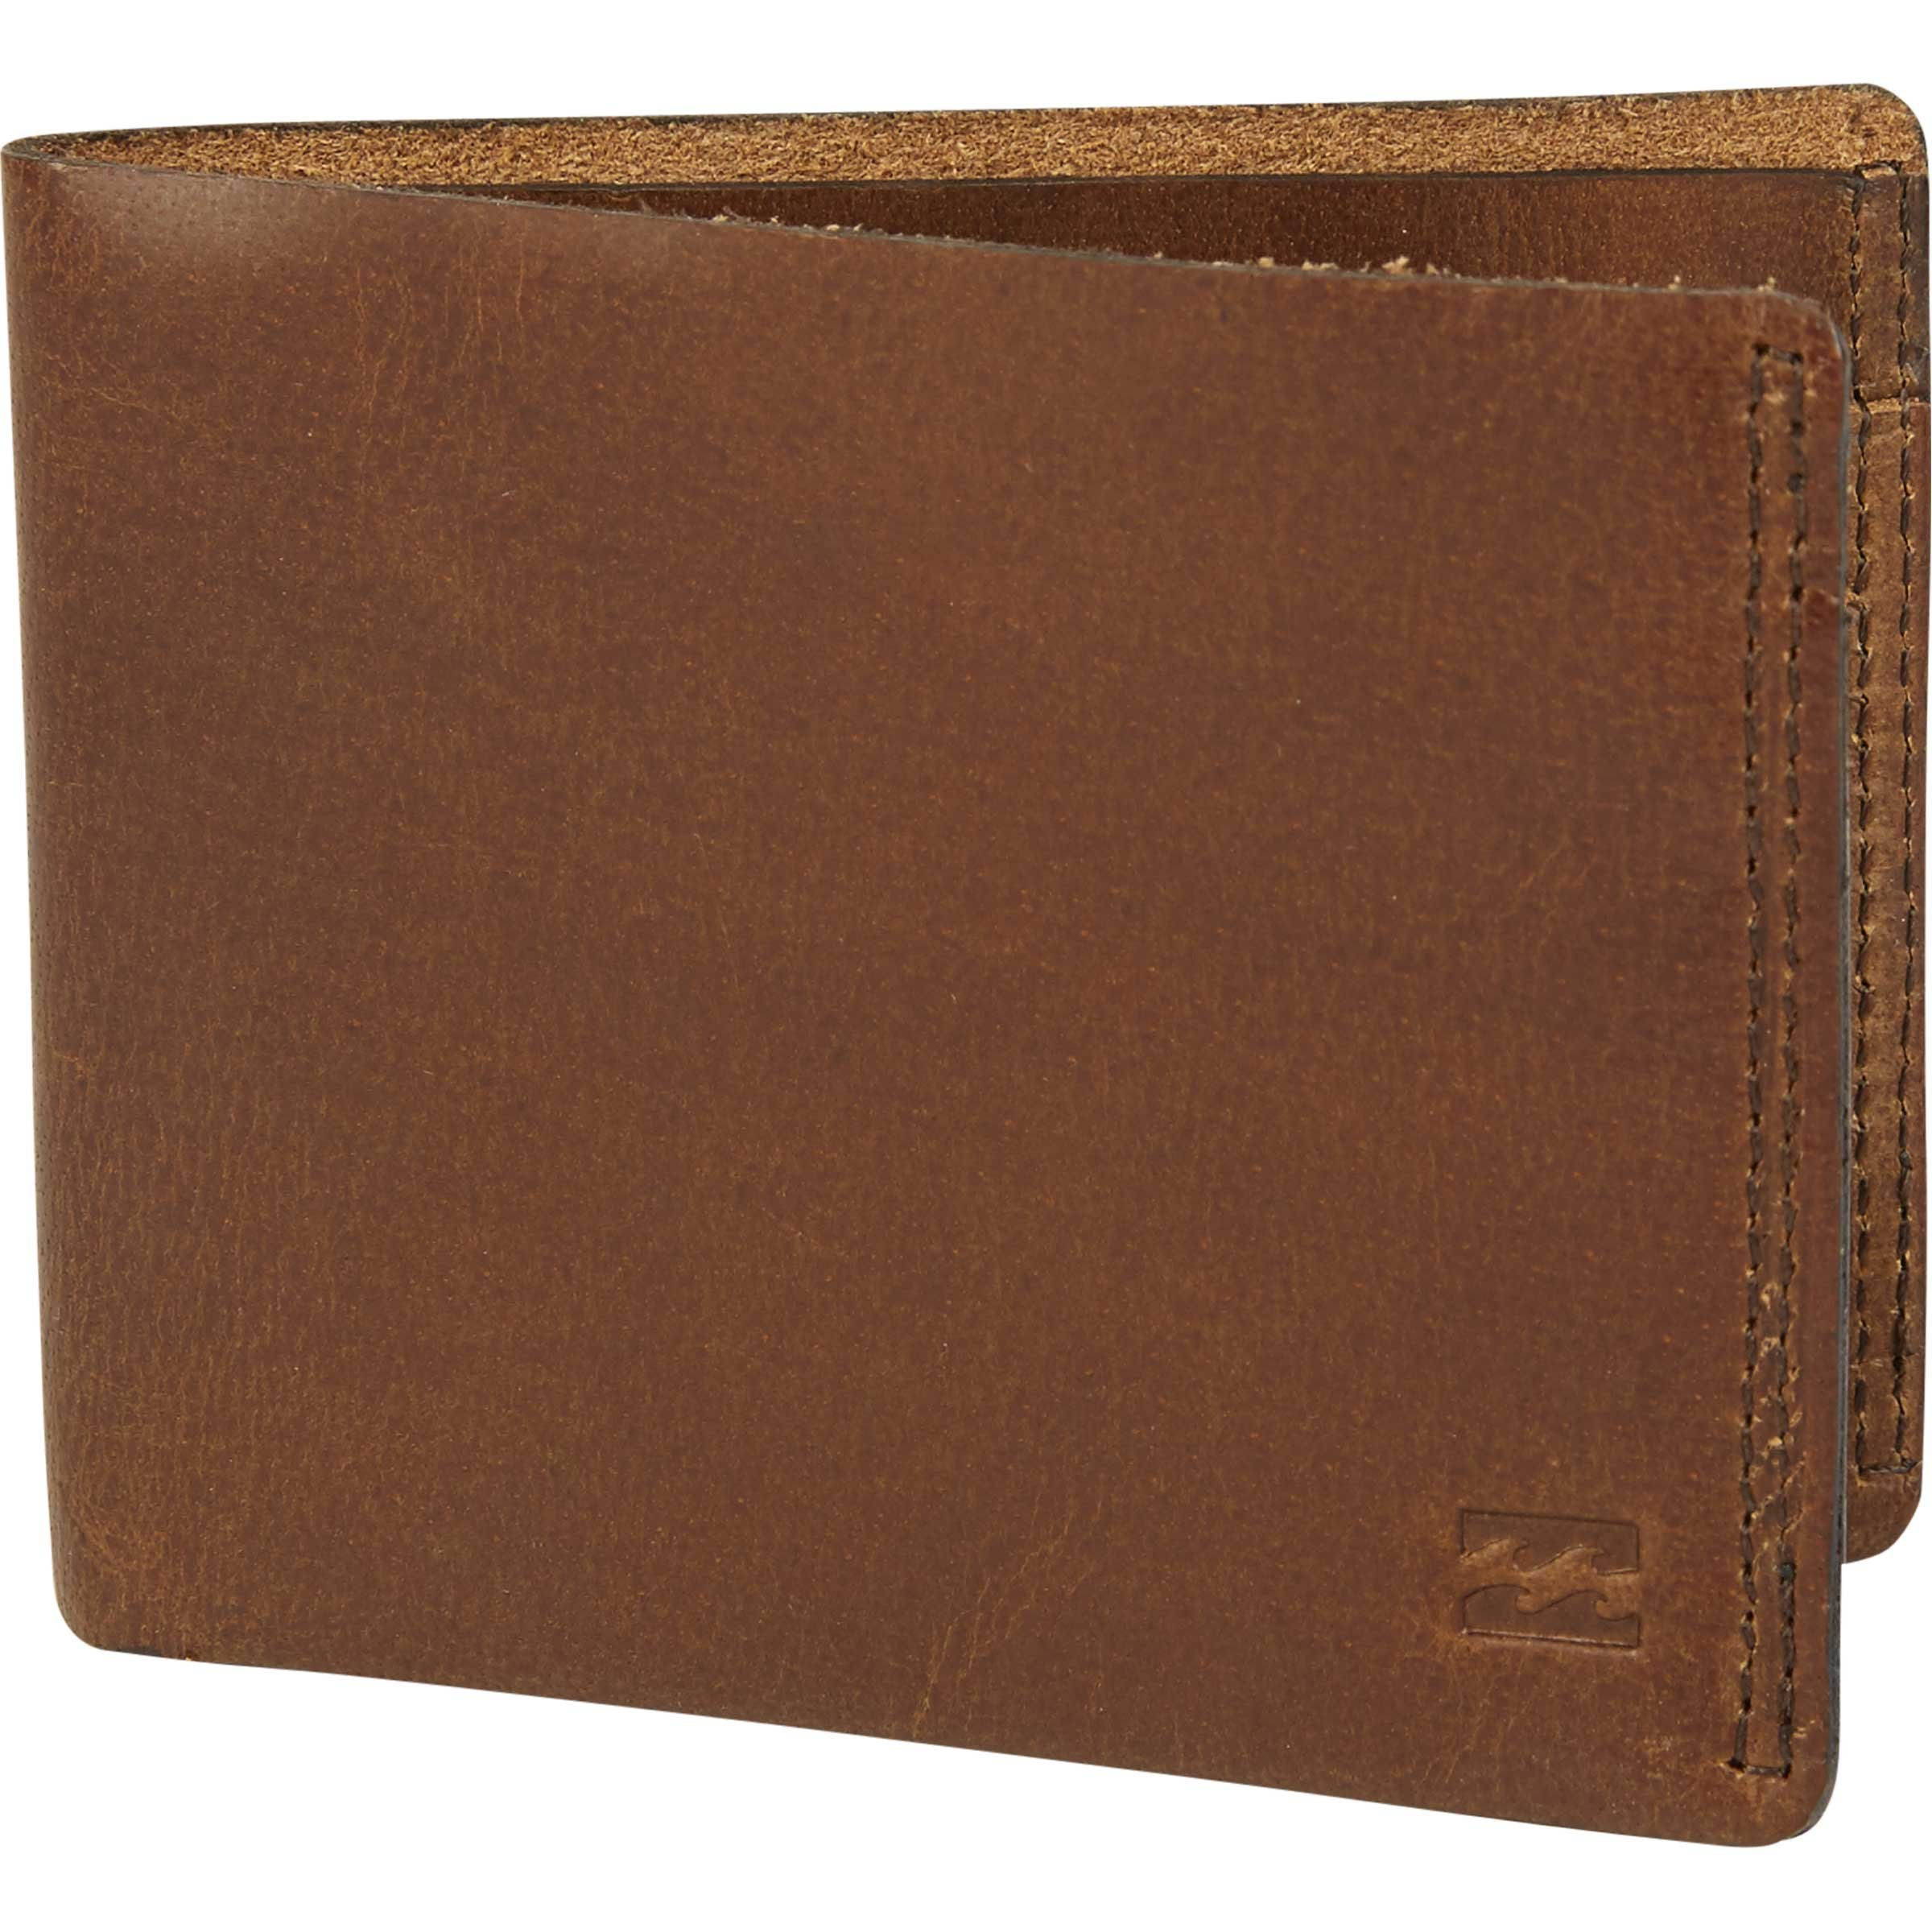 Billabong Men's All Day Leather Wallet, Brown, One